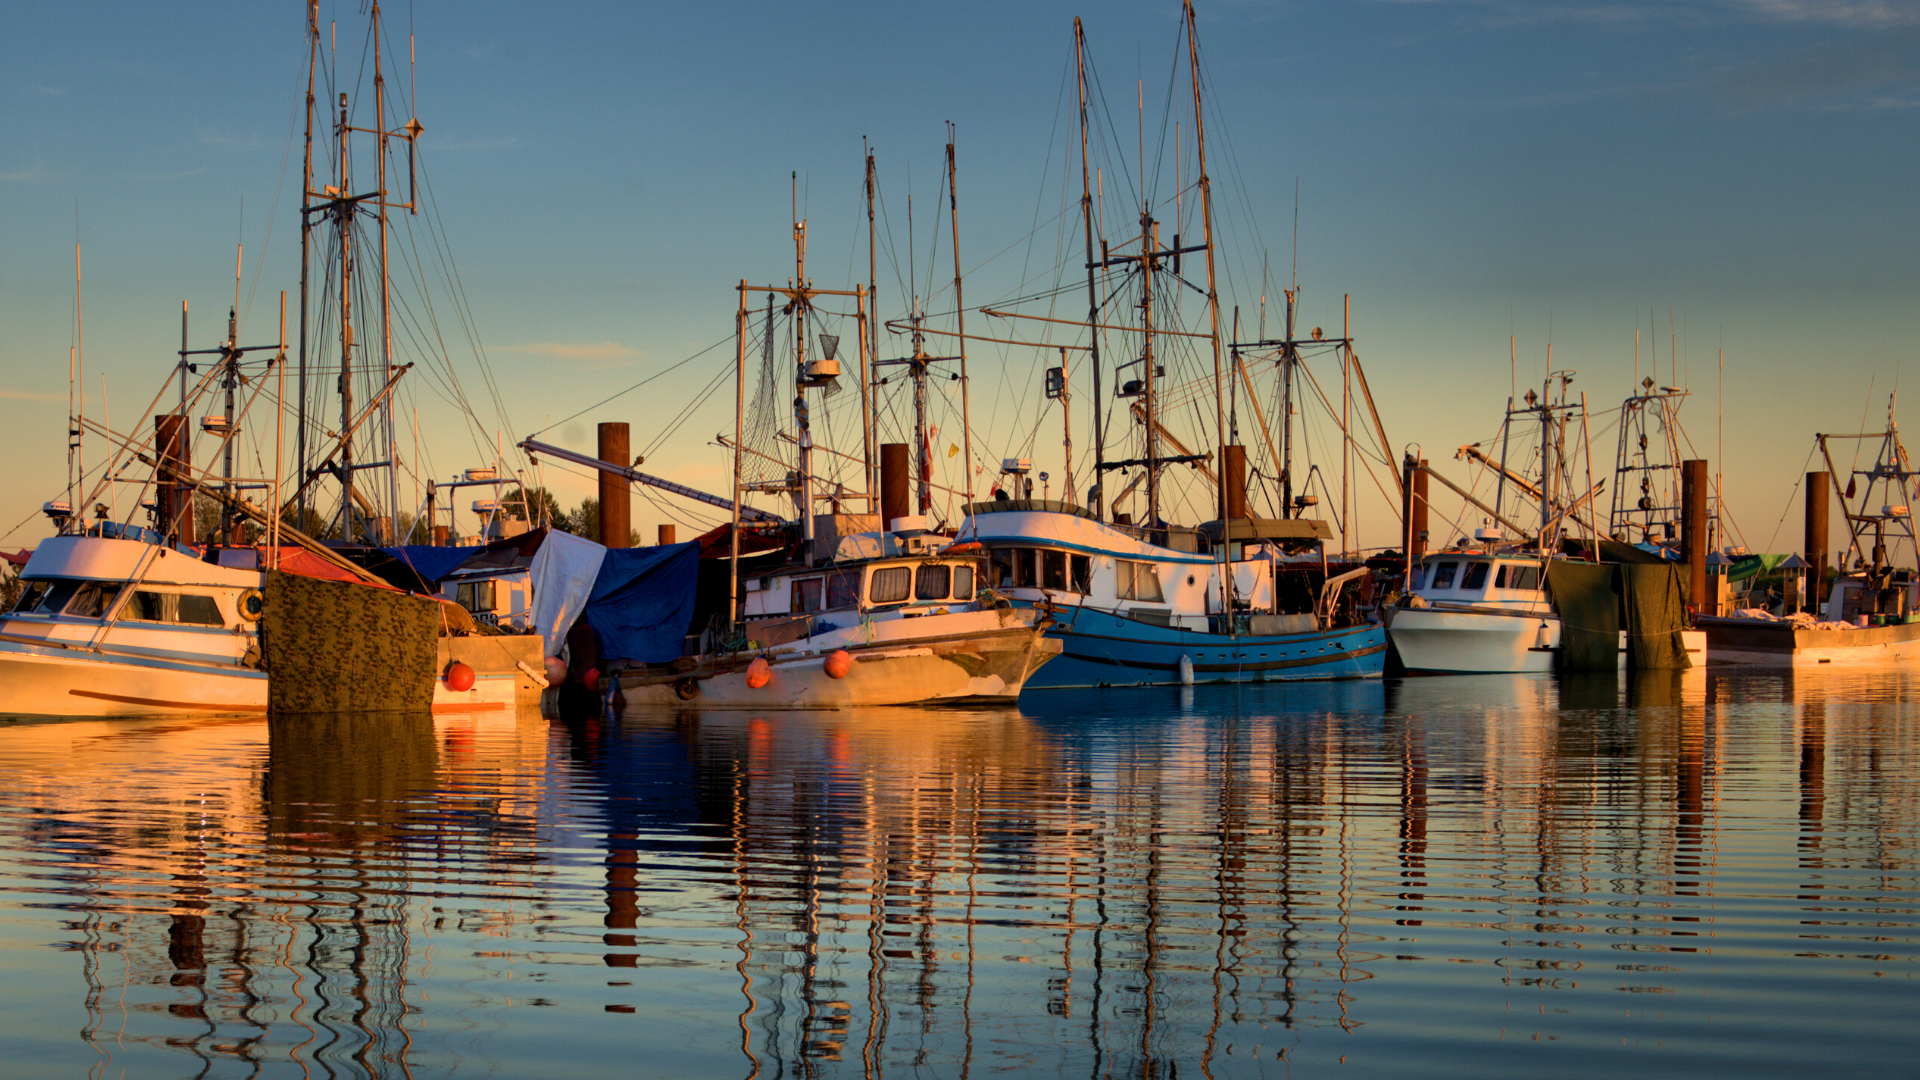 There are many fishing charters at the shore